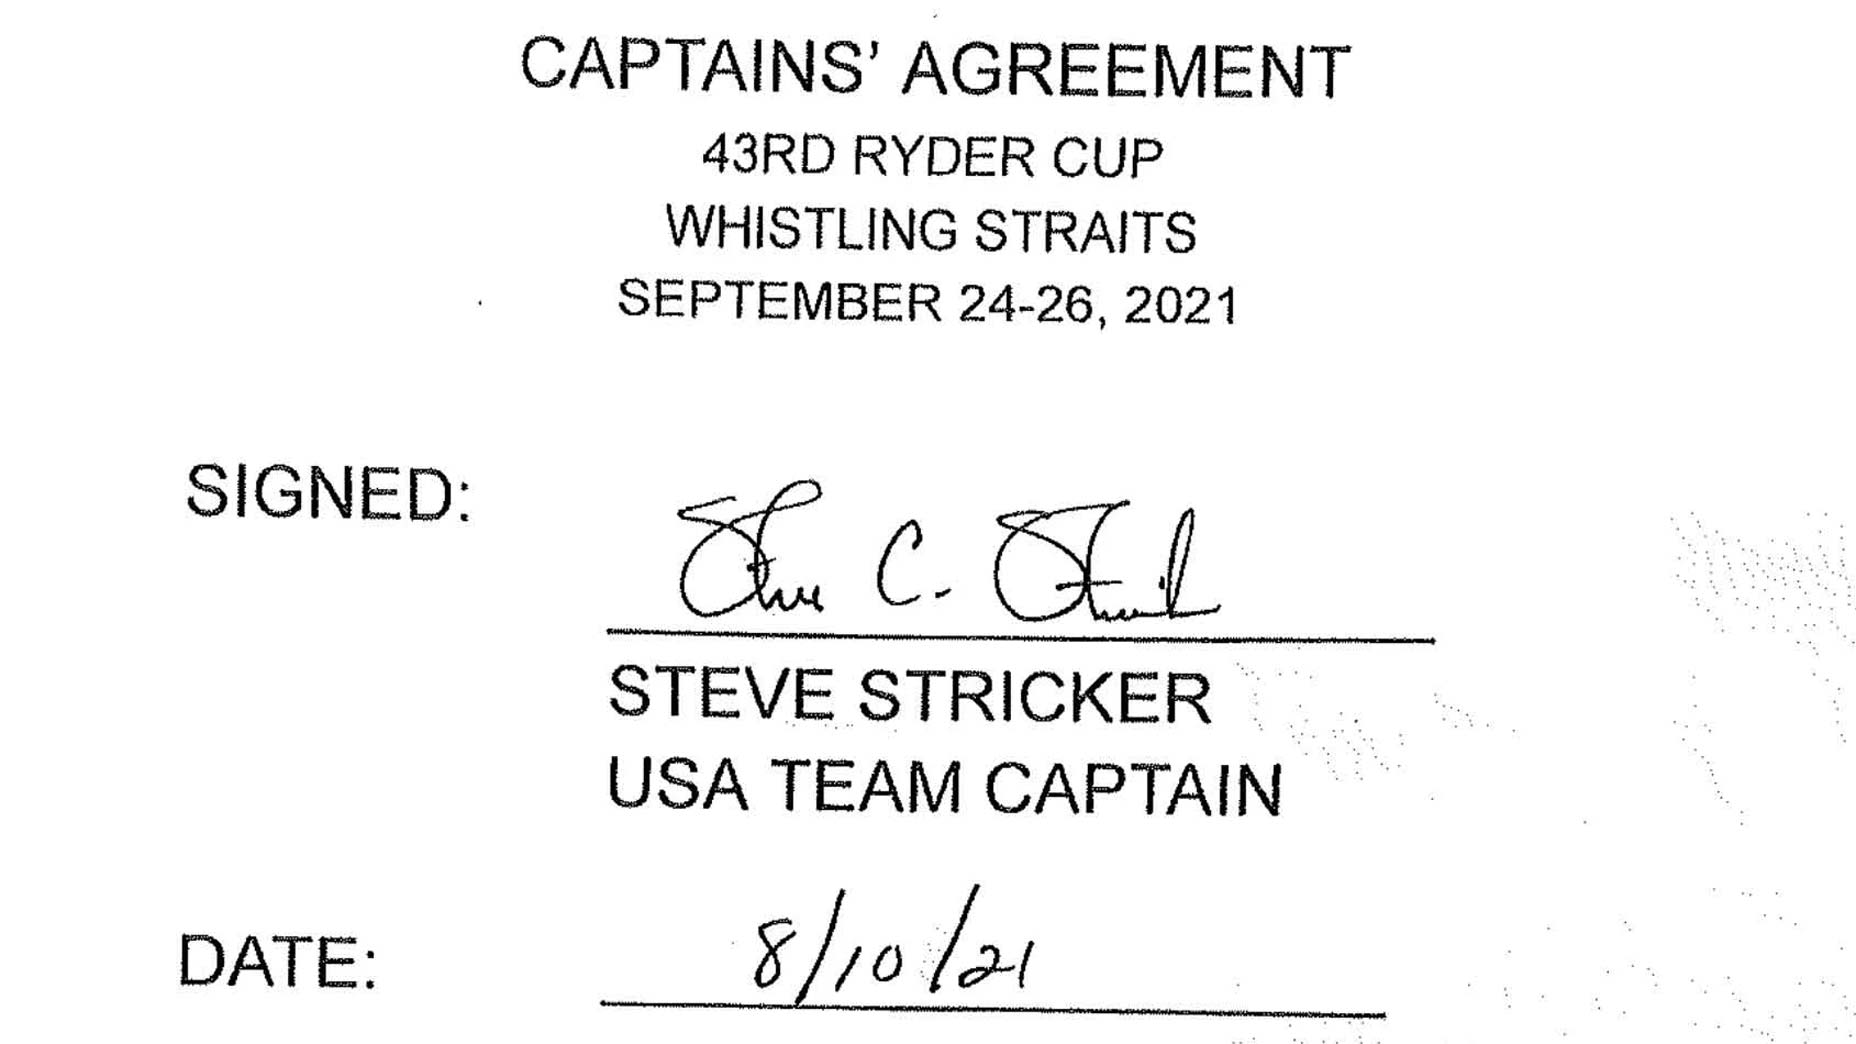 Ryder Cup captains' agreement